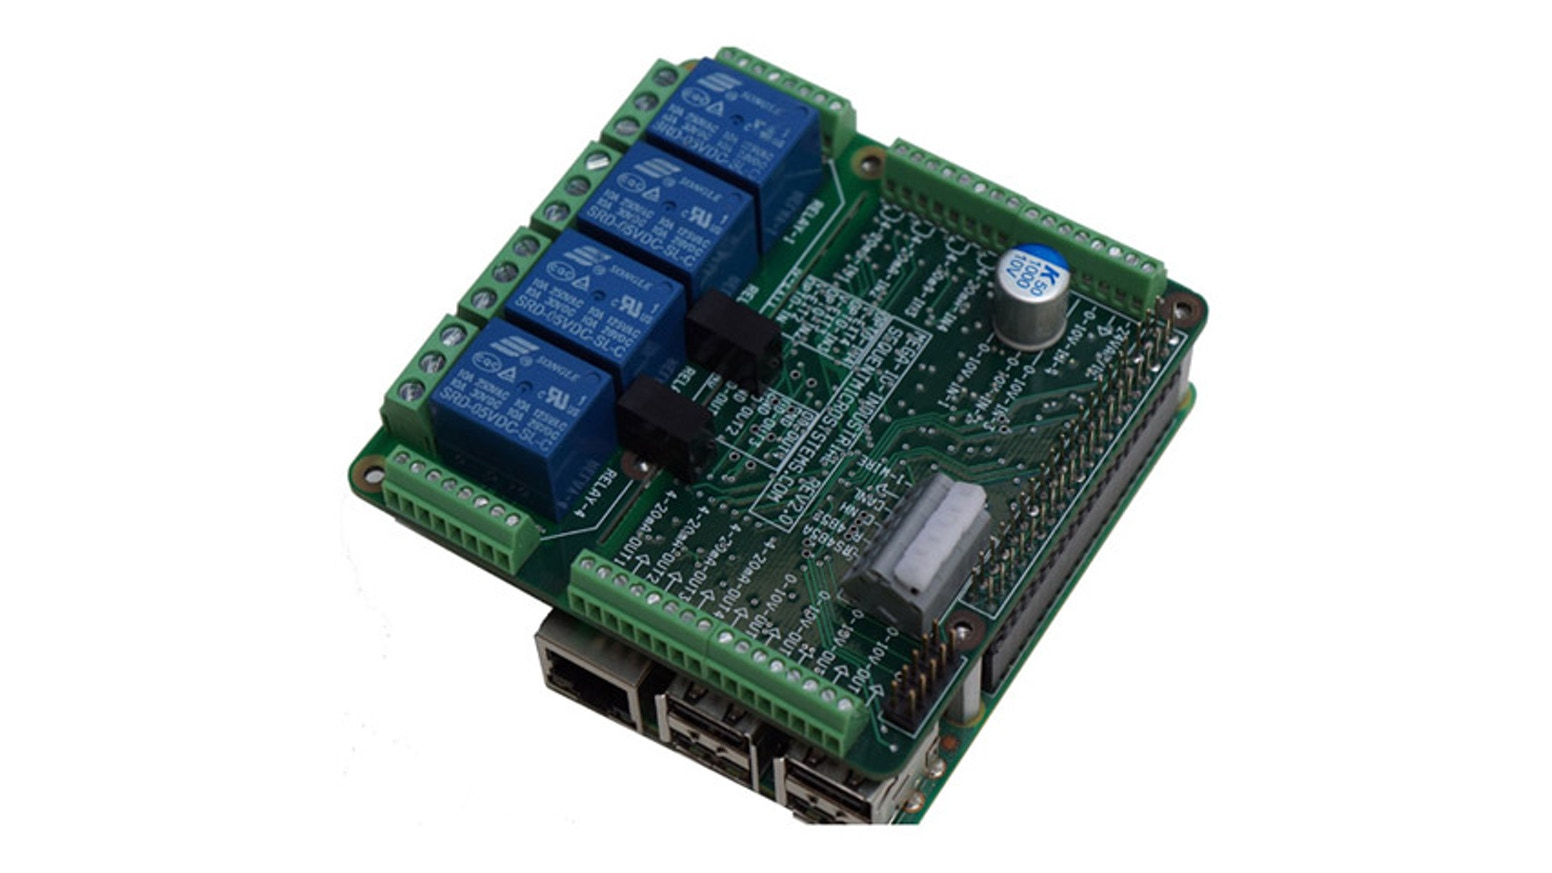 Megaio Ind Industrial Building Automation For Raspberrypi By Wiring Diagrams The Swiss Army Knife Of Raspberry Pi 4 20ma